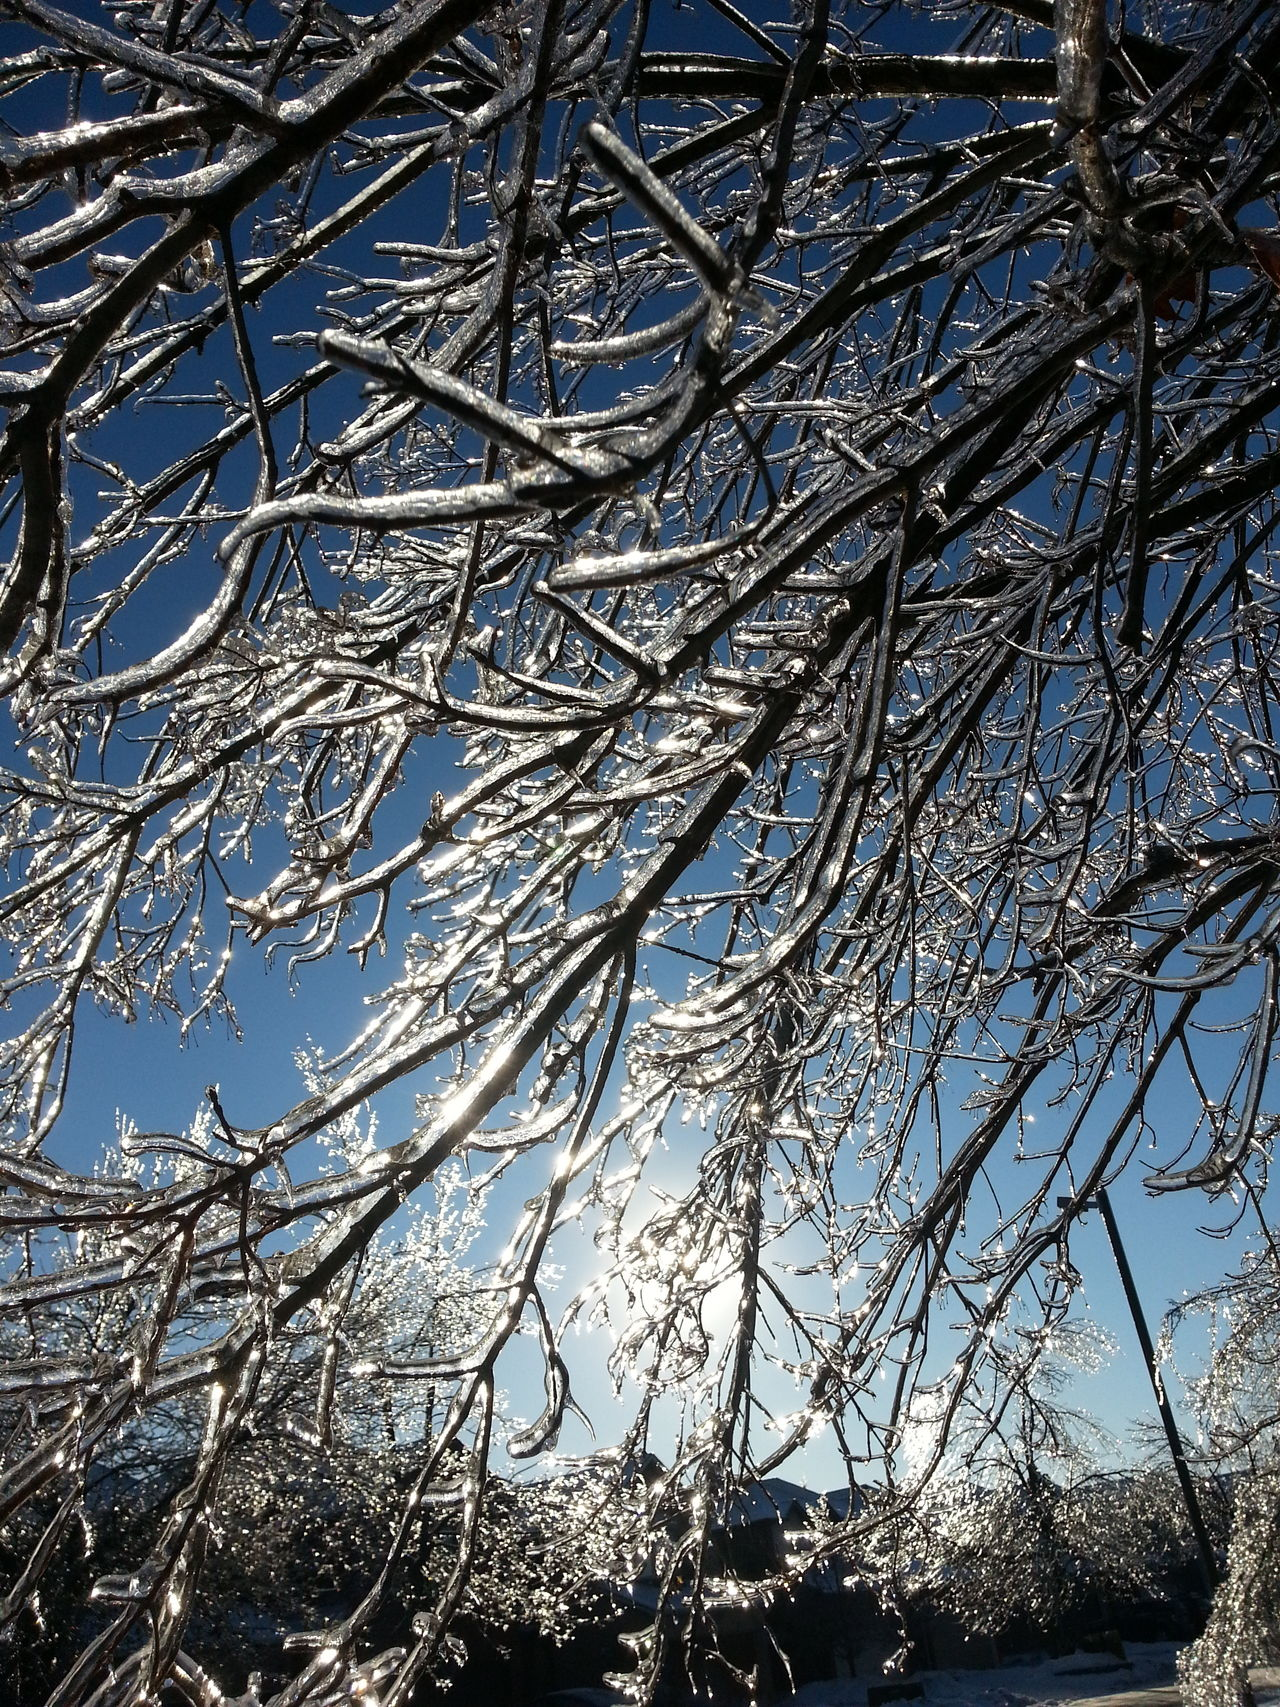 Low Angle View Branch Nature Tree Beauty In Nature Day Backgrounds Ice Iced Winter Full Frame No People Sky Growth Outdoors Clear Sky Close-up Freshness